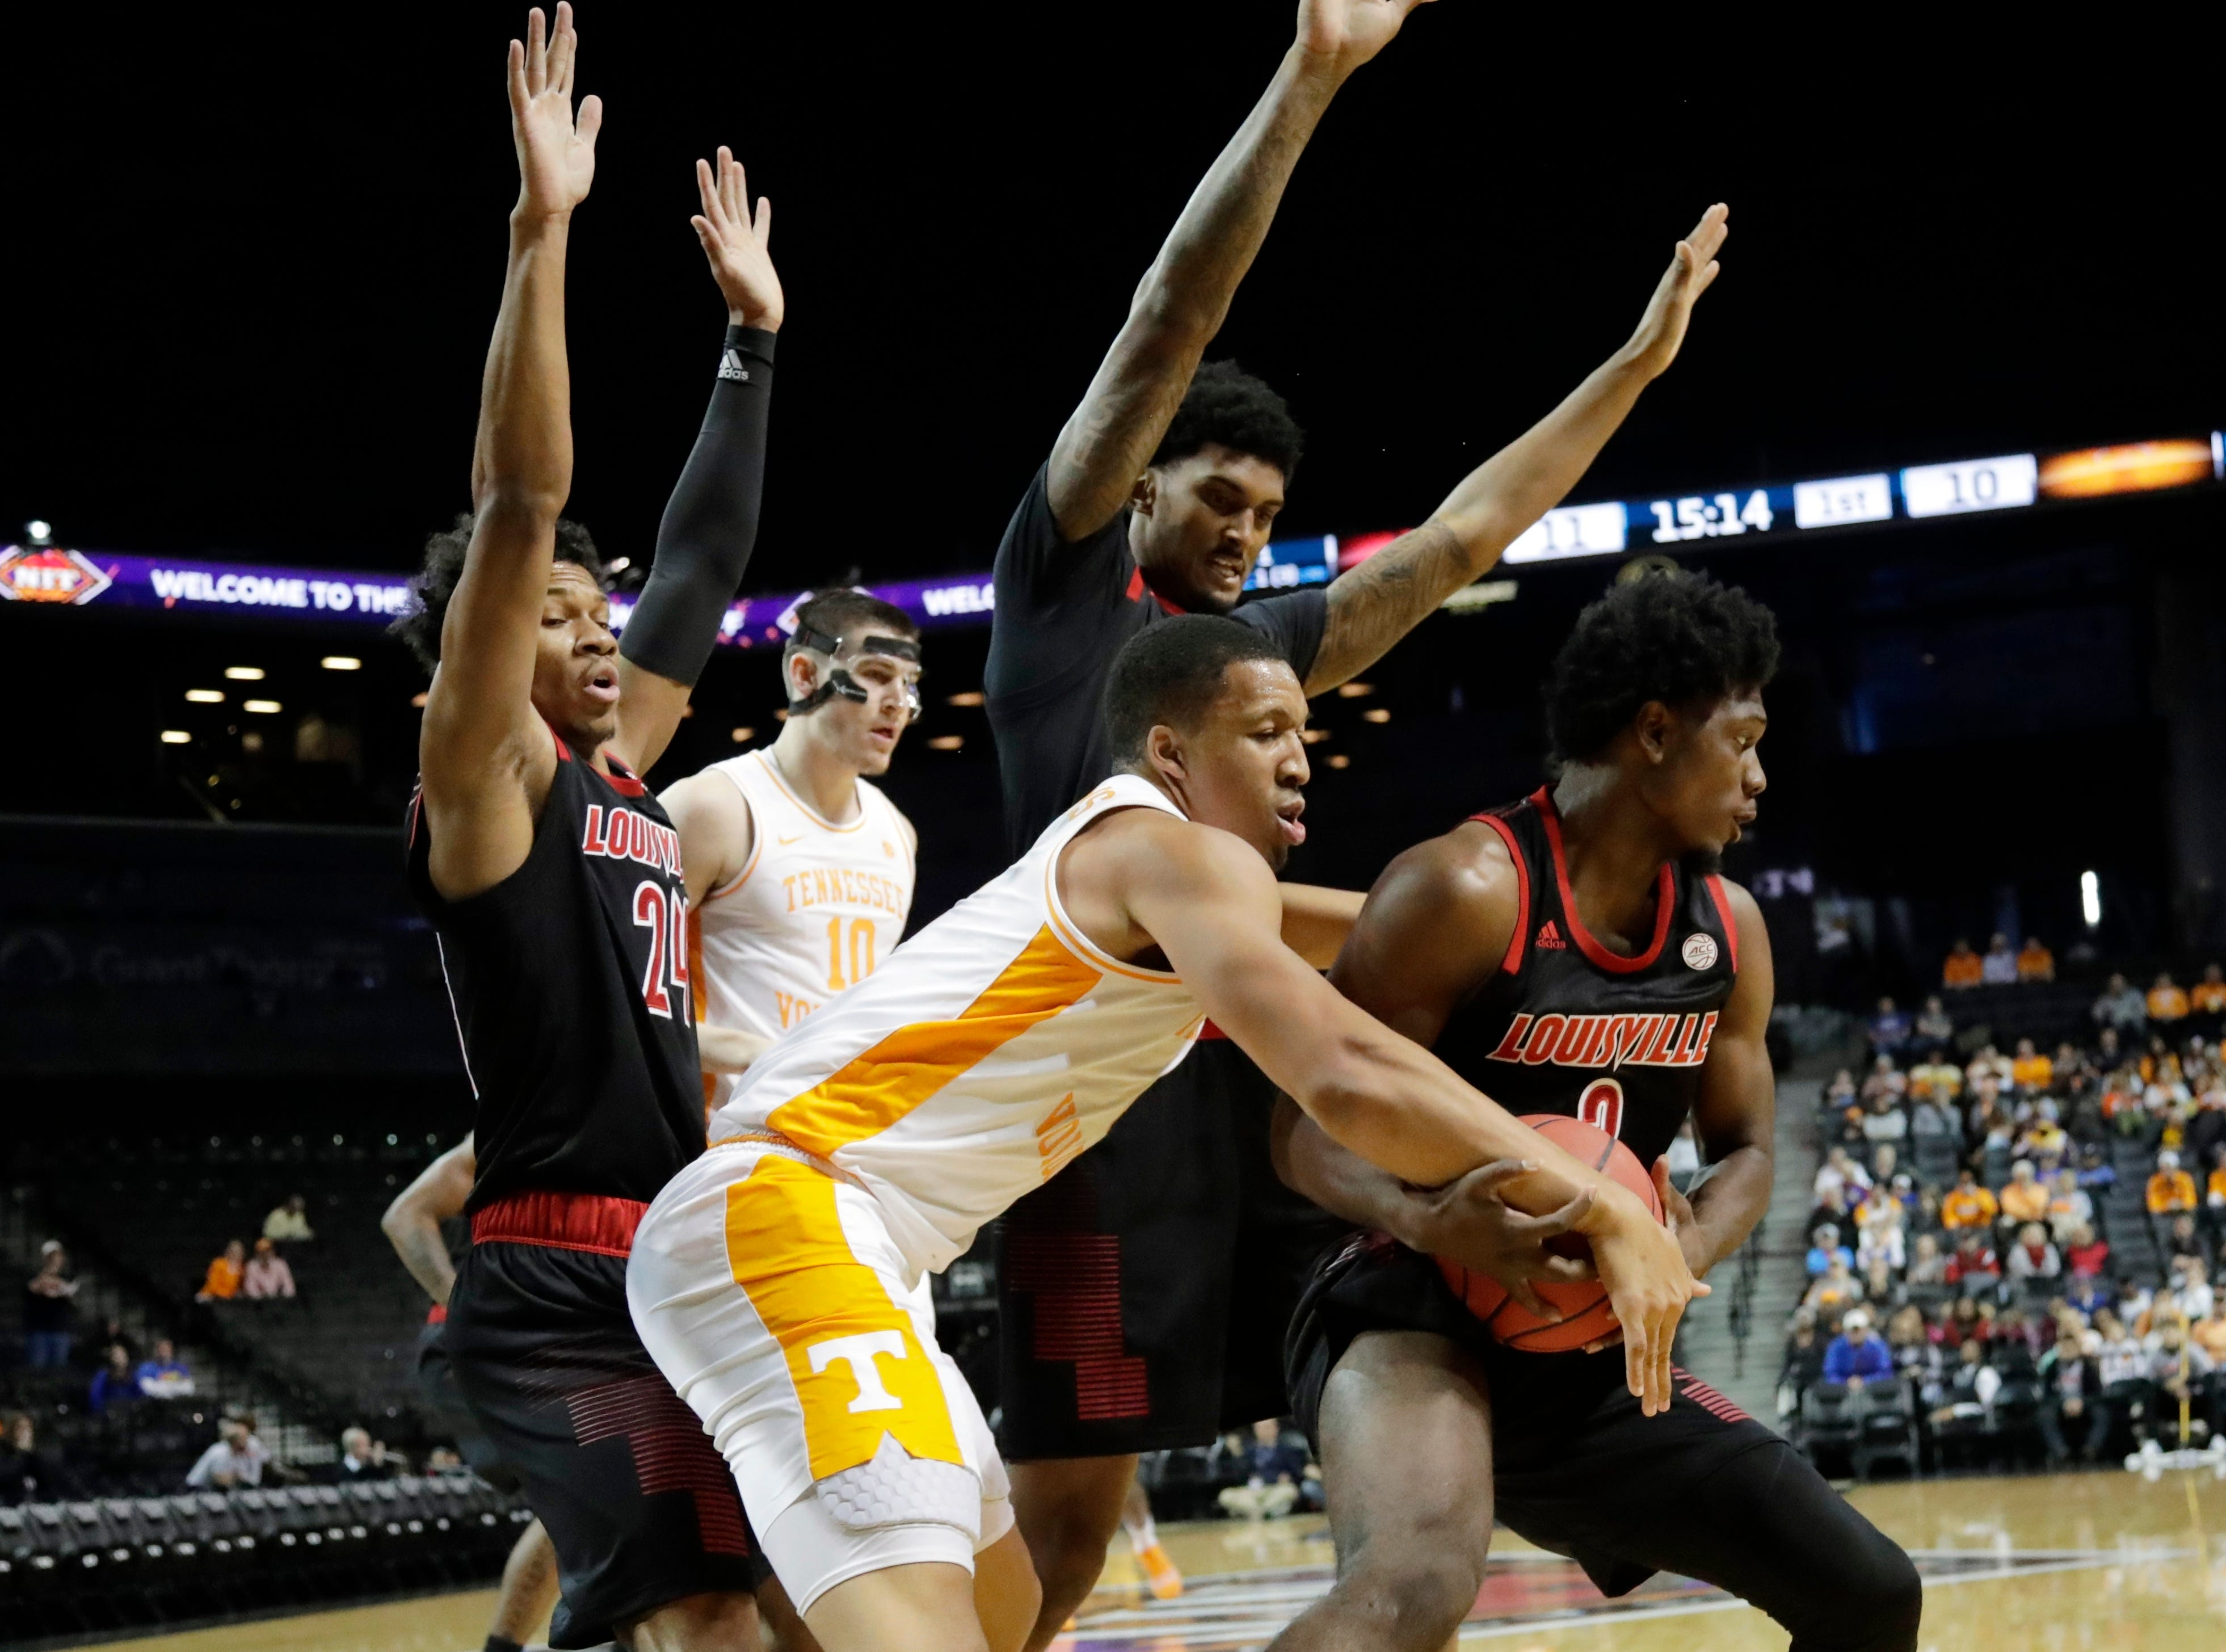 Louisville's Darius Perry (2) and Tennessee's Grant Williams (2) fight for control of the ball as Dwayne Sutton (24) and John Fulkerson (10) watch during the first half of an NCAA college basketball game in the NIT Season Tip-Off tournament Wednesday, Nov. 21, 2018, in New York. (AP Photo/Frank Franklin II)